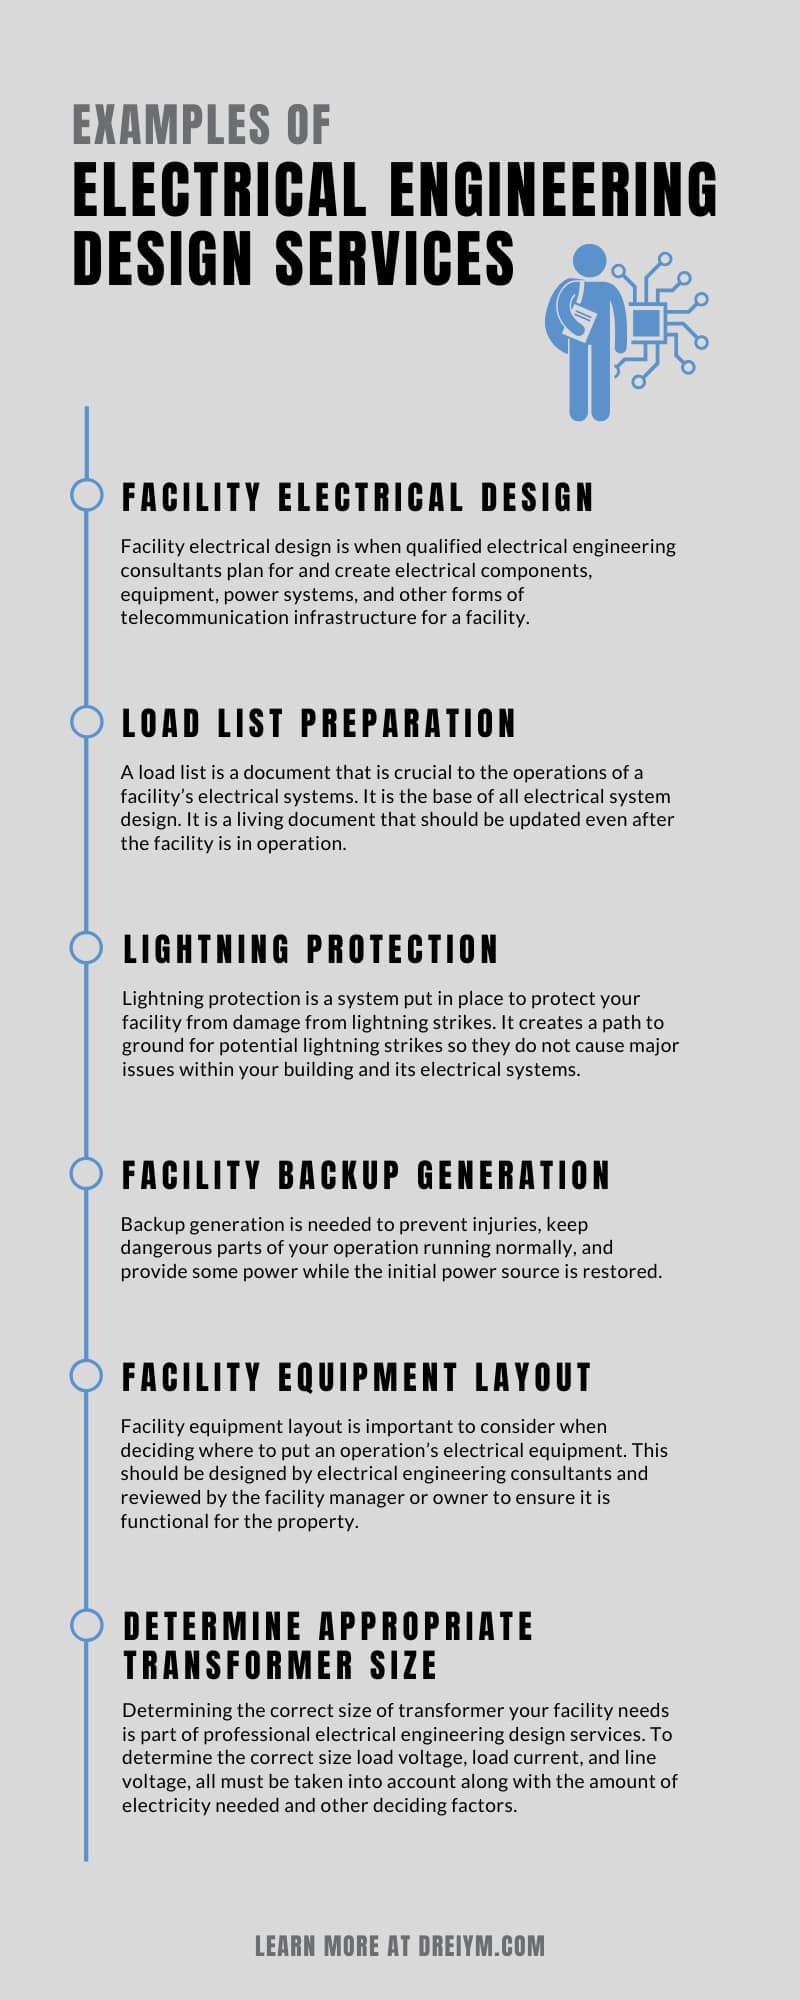 Examples of Electrical Engineering Design Services